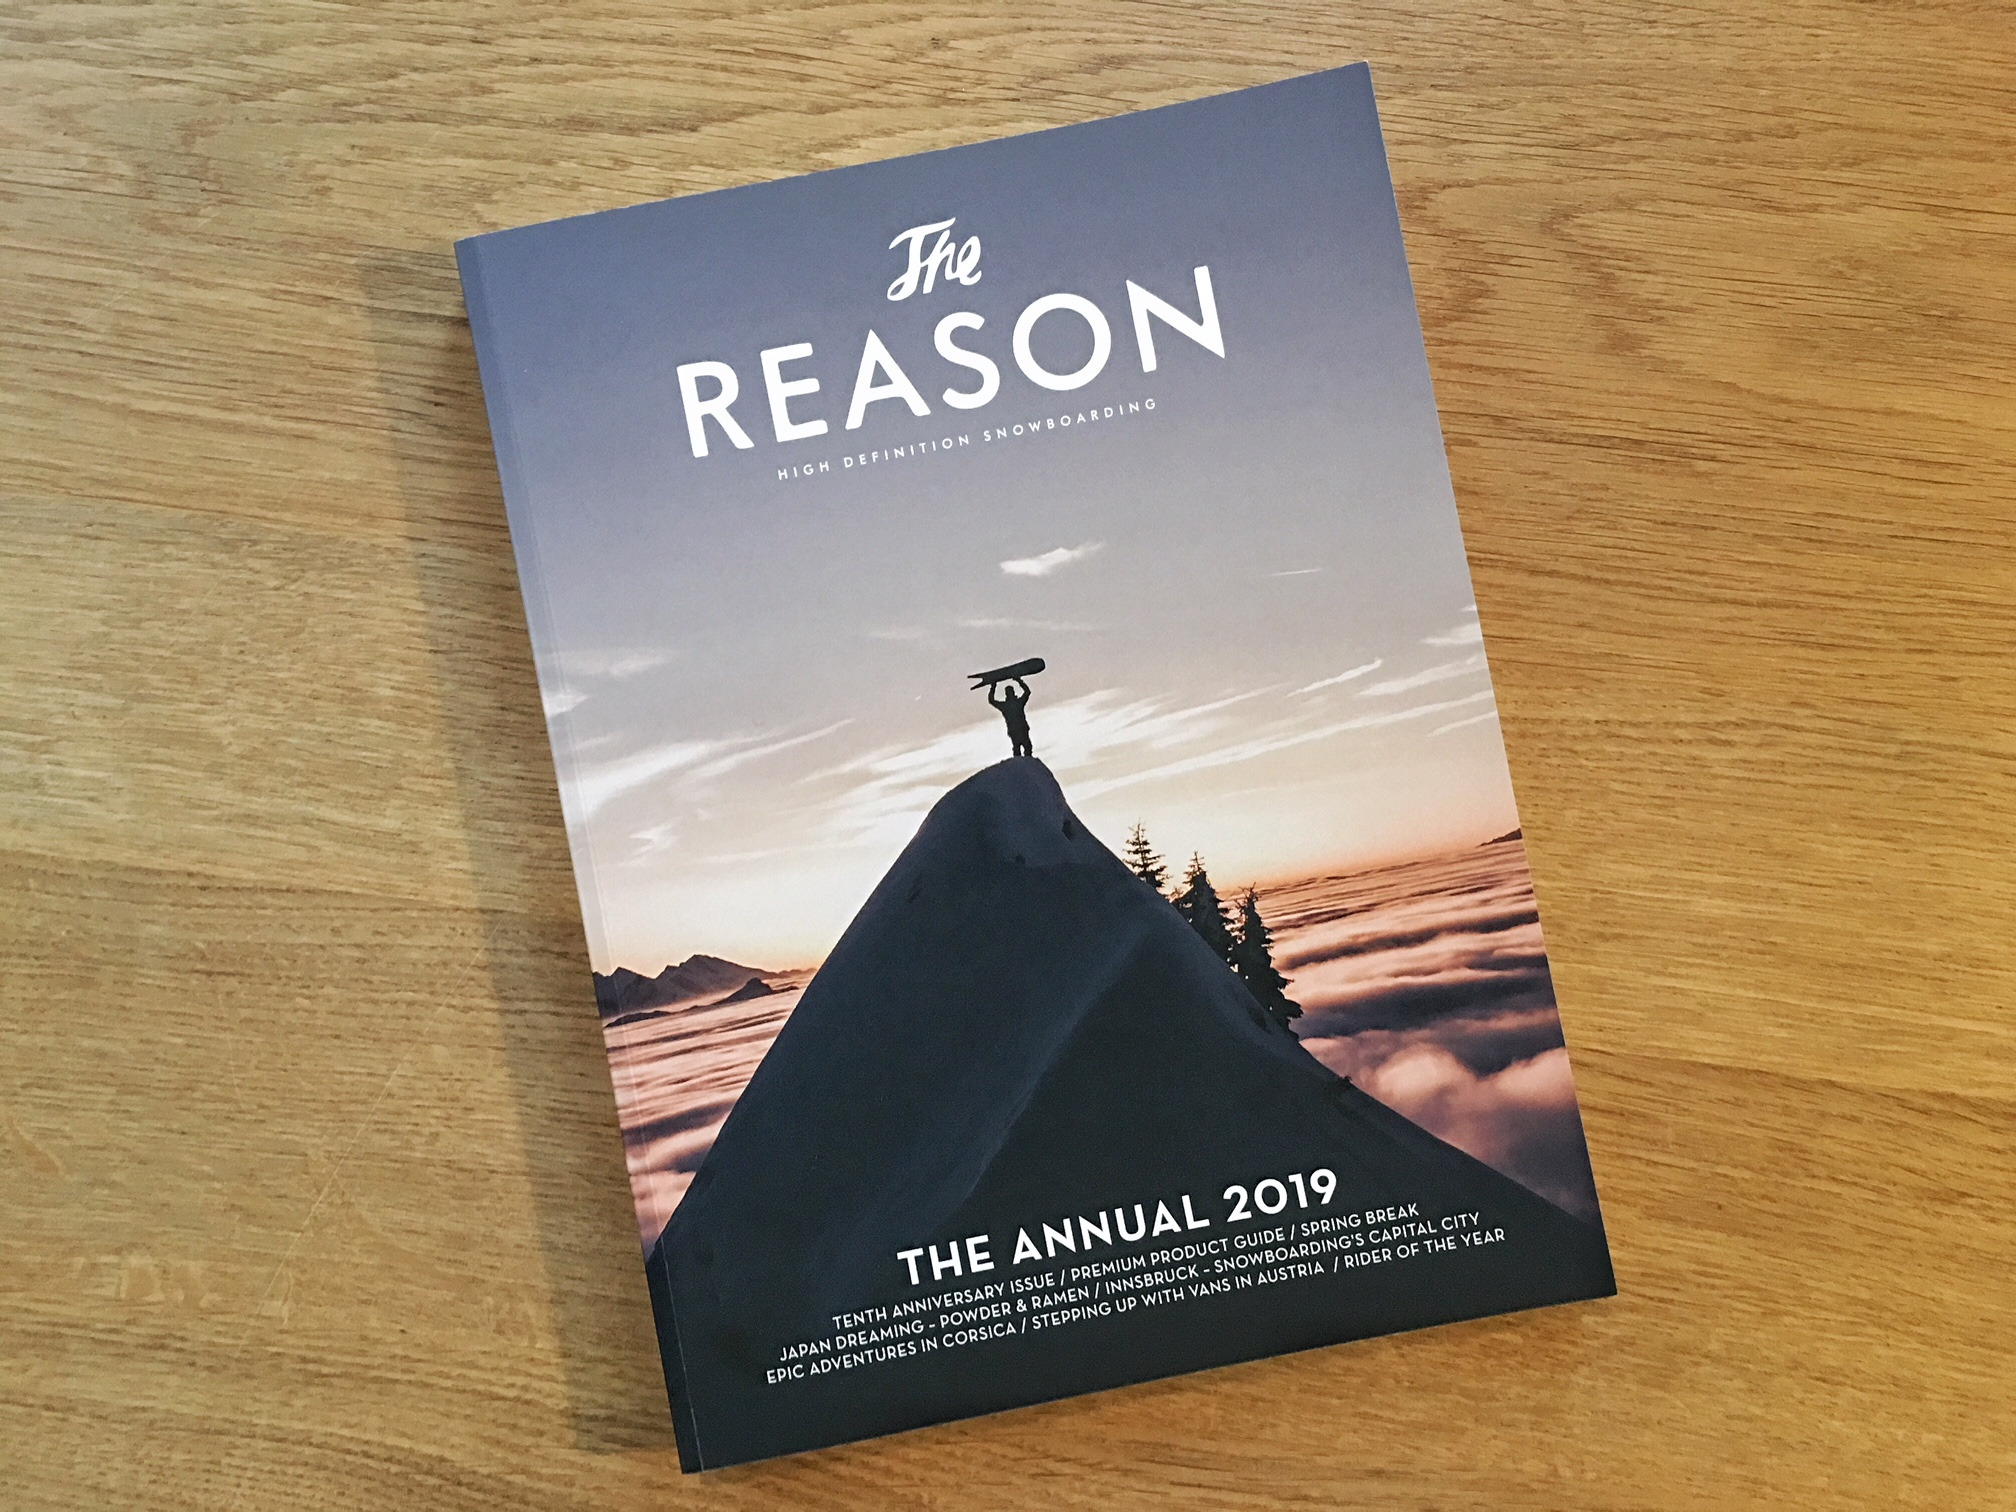 The Reason Annual 2019 – In stores now!